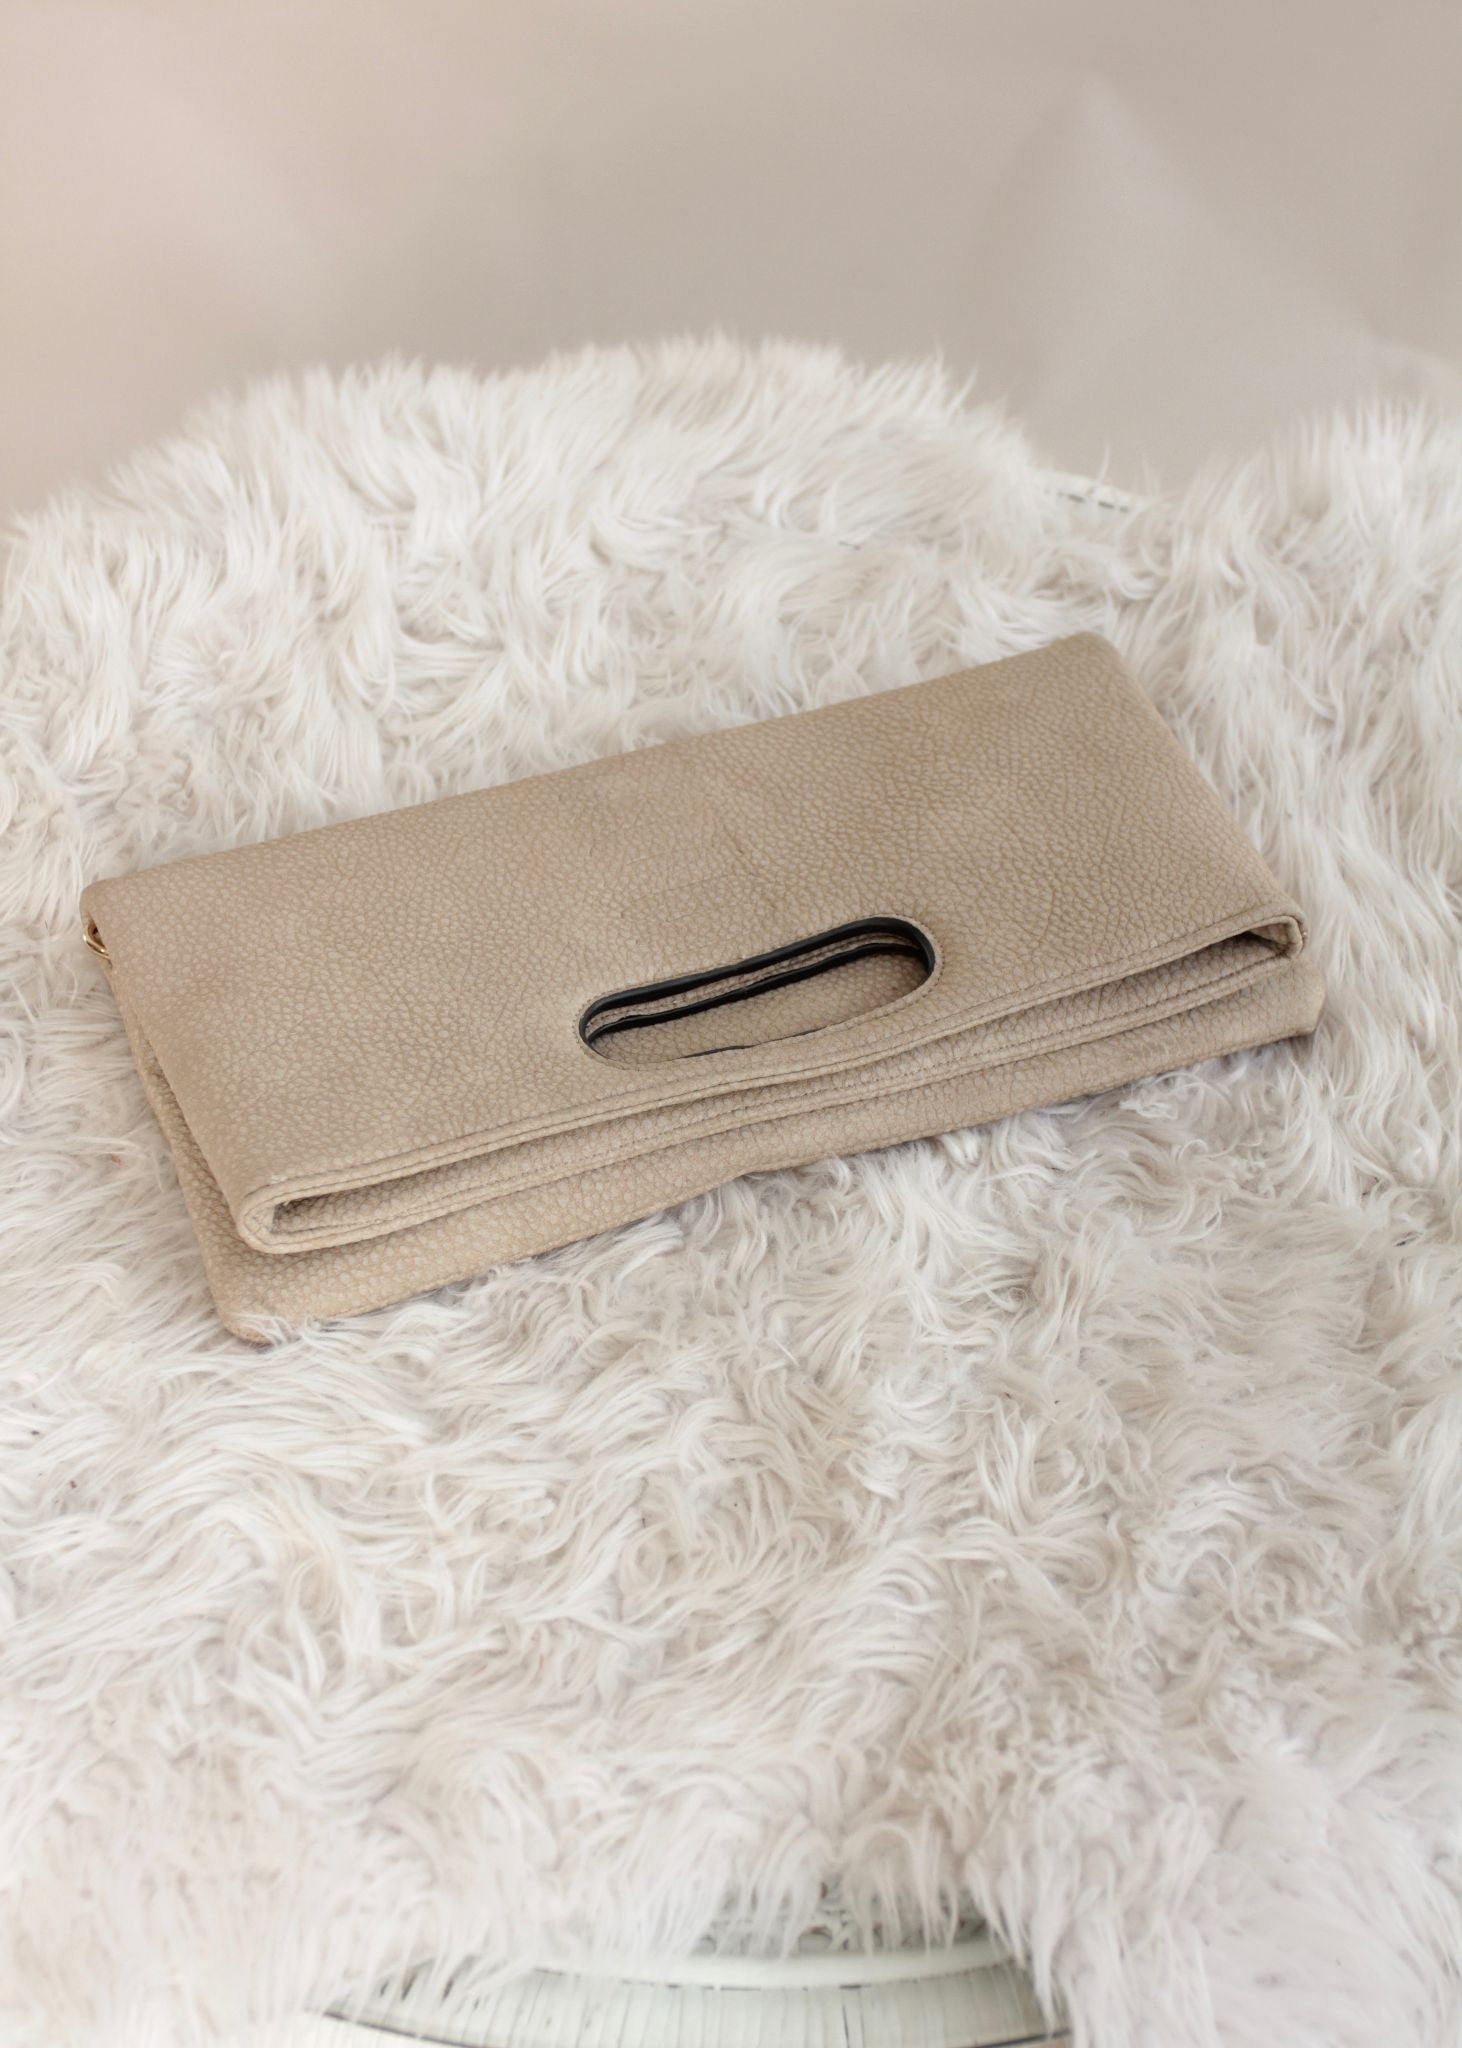 Dangerfield Clutch - Stone